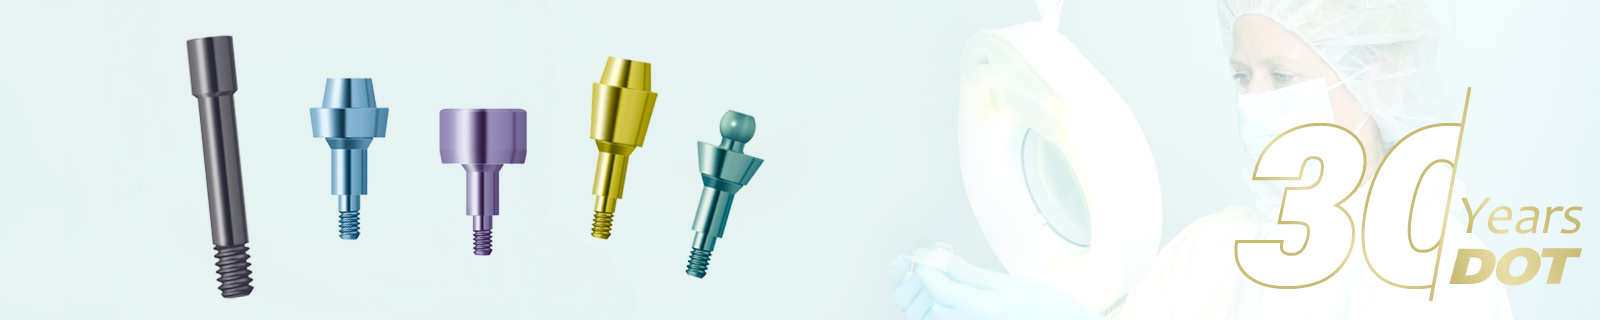 Anodising of dental components (Type II und III-Anodising) made by DOT GmbH